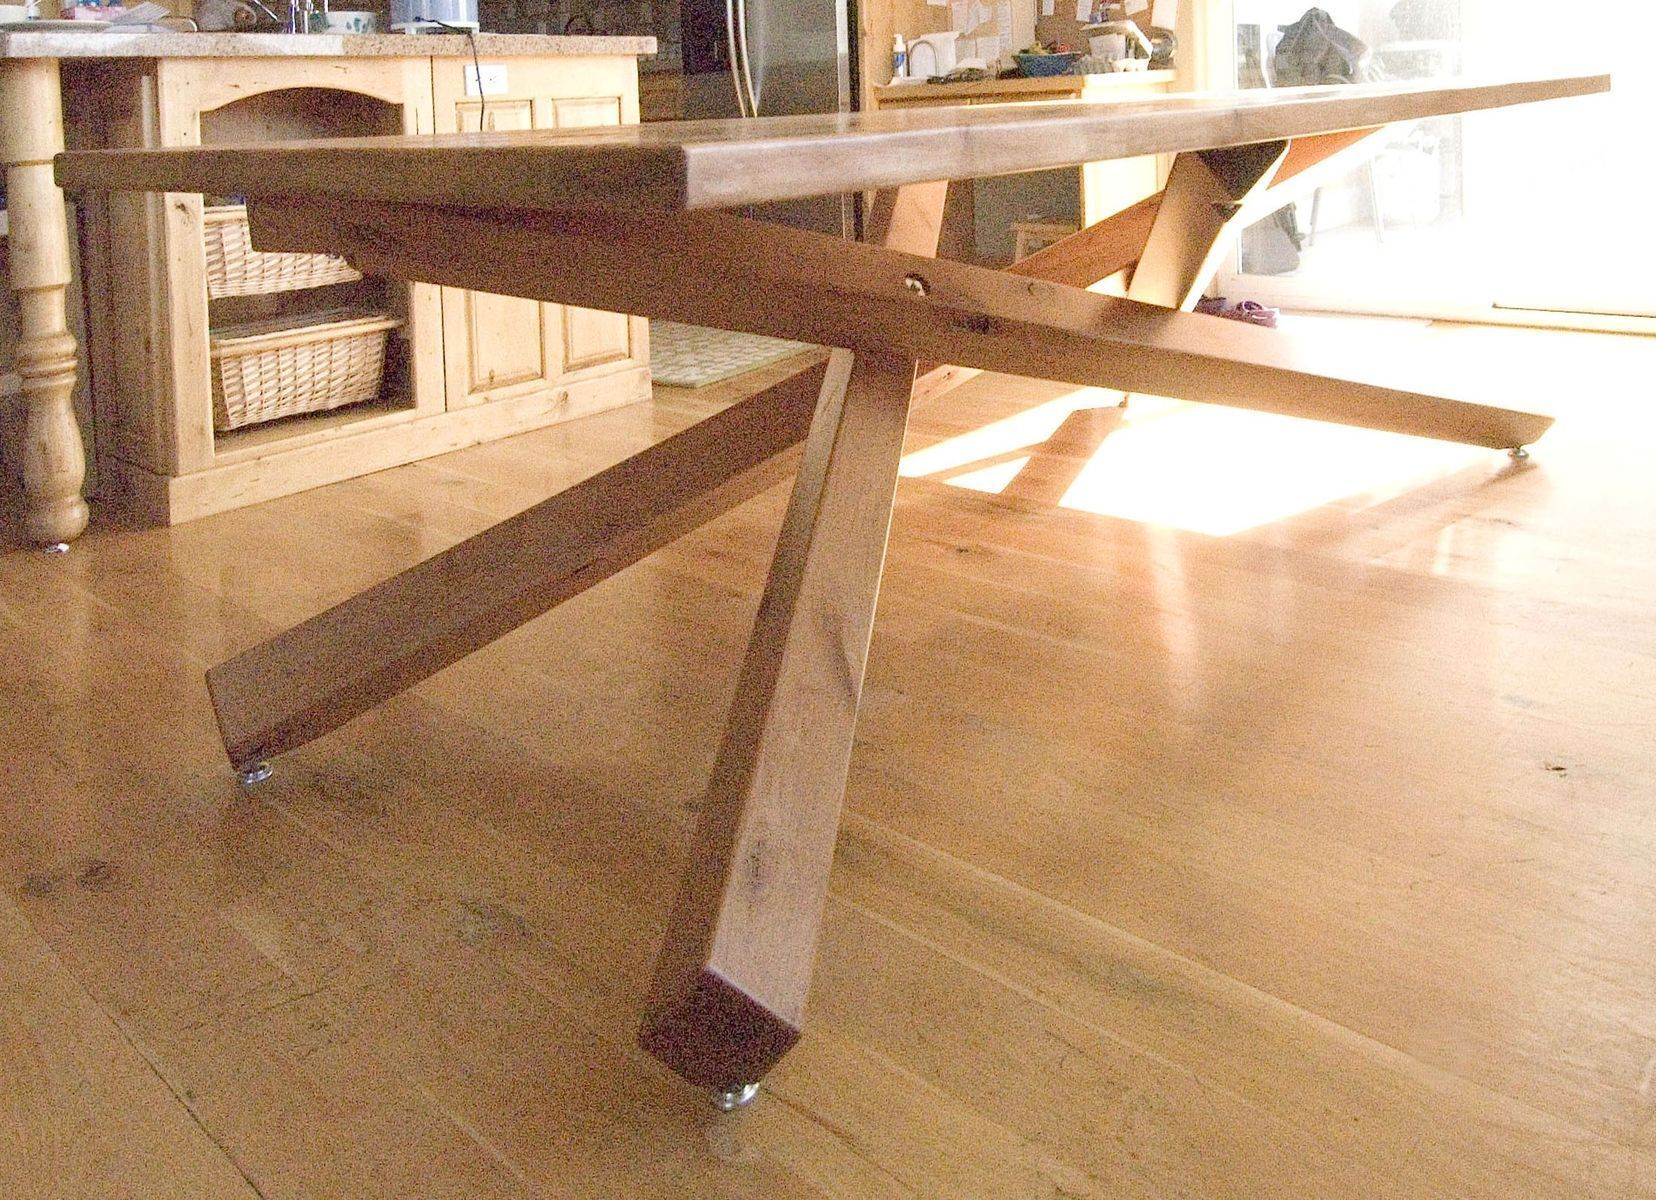 Fine Woodworking Popular Woodworking Projects Finewoodworking